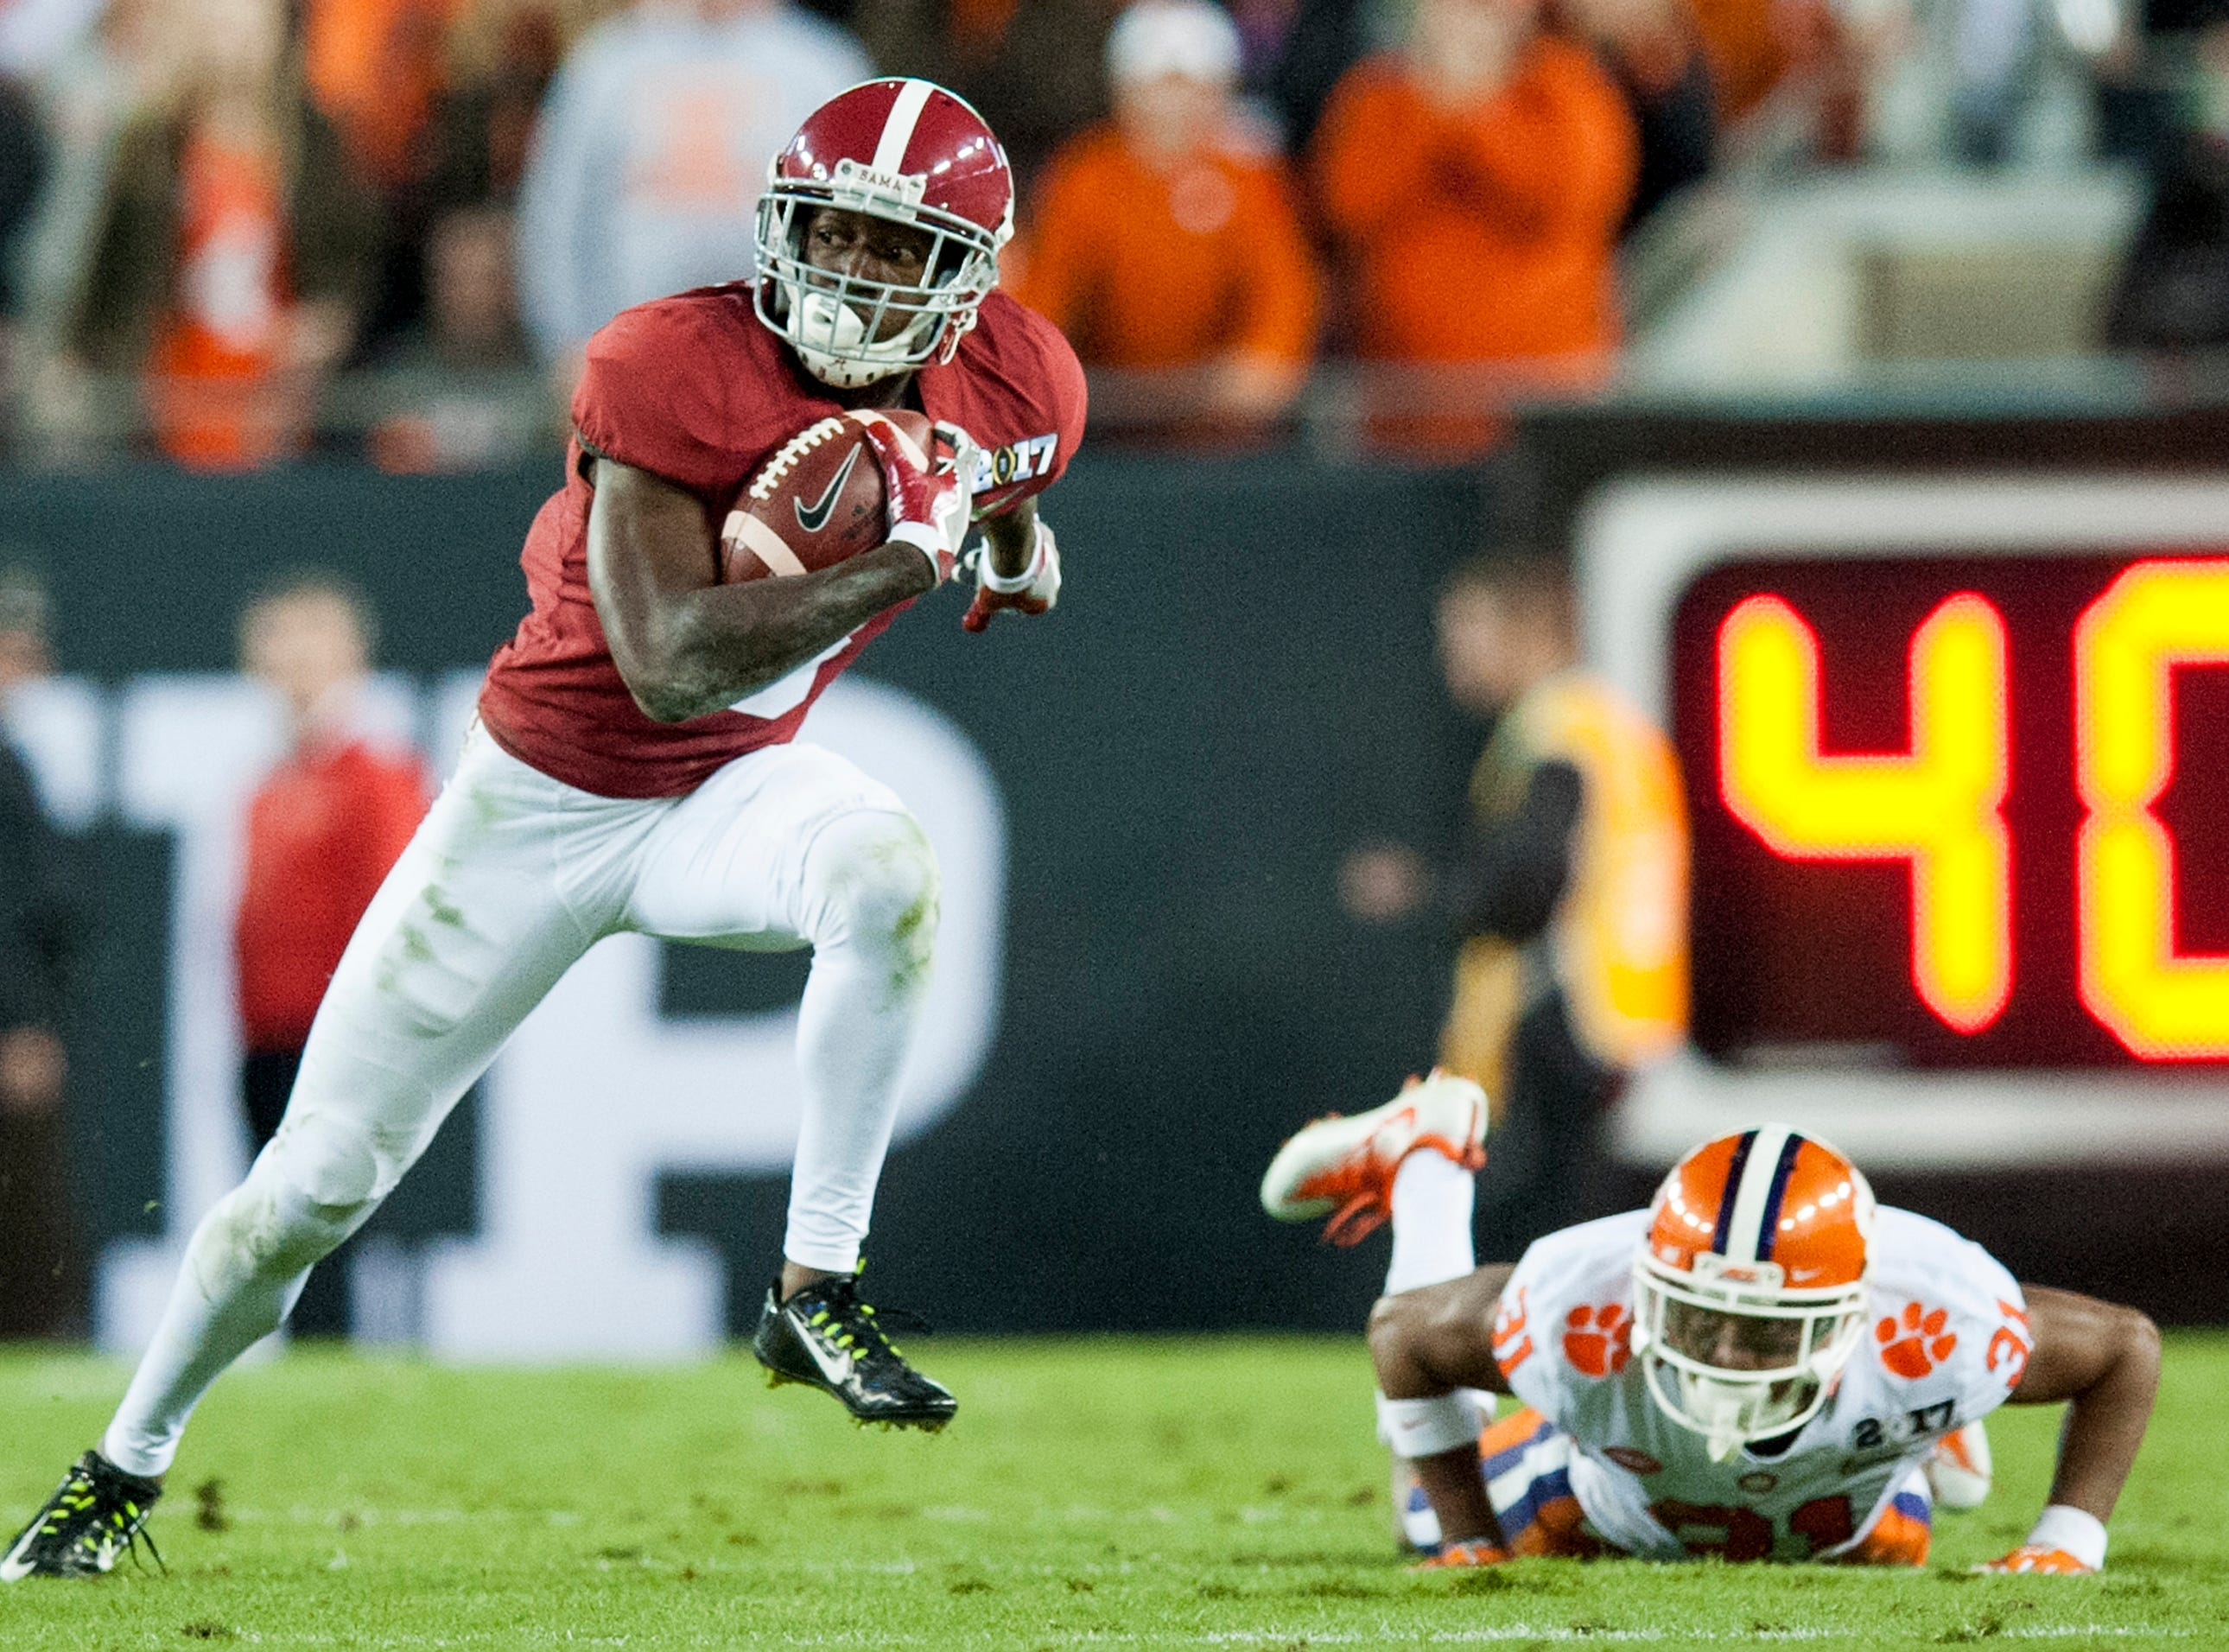 Alabama wide receiver Calvin Ridley (3) carries a reception against Clemson in first half action of the College Football Playoff National Championship Game at Raymond James Stadium in Tampa, Fla. on Monday January 9, 2017.